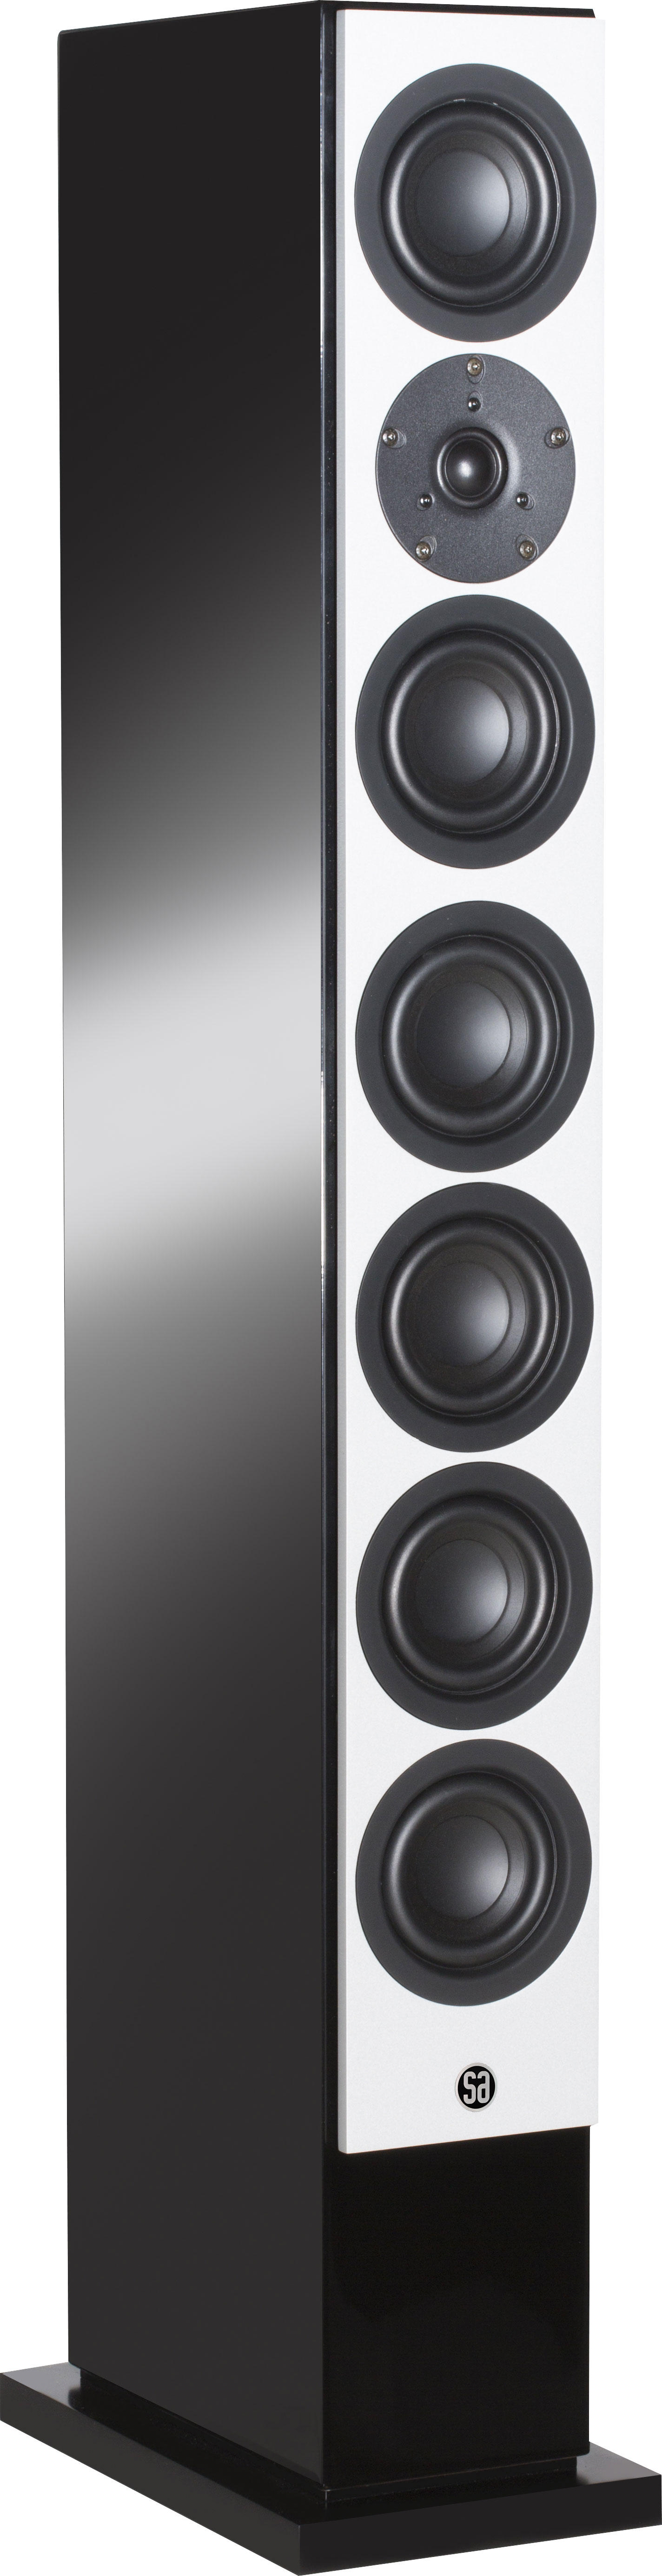 System Audio Mantra 70 Kolor: Czarny